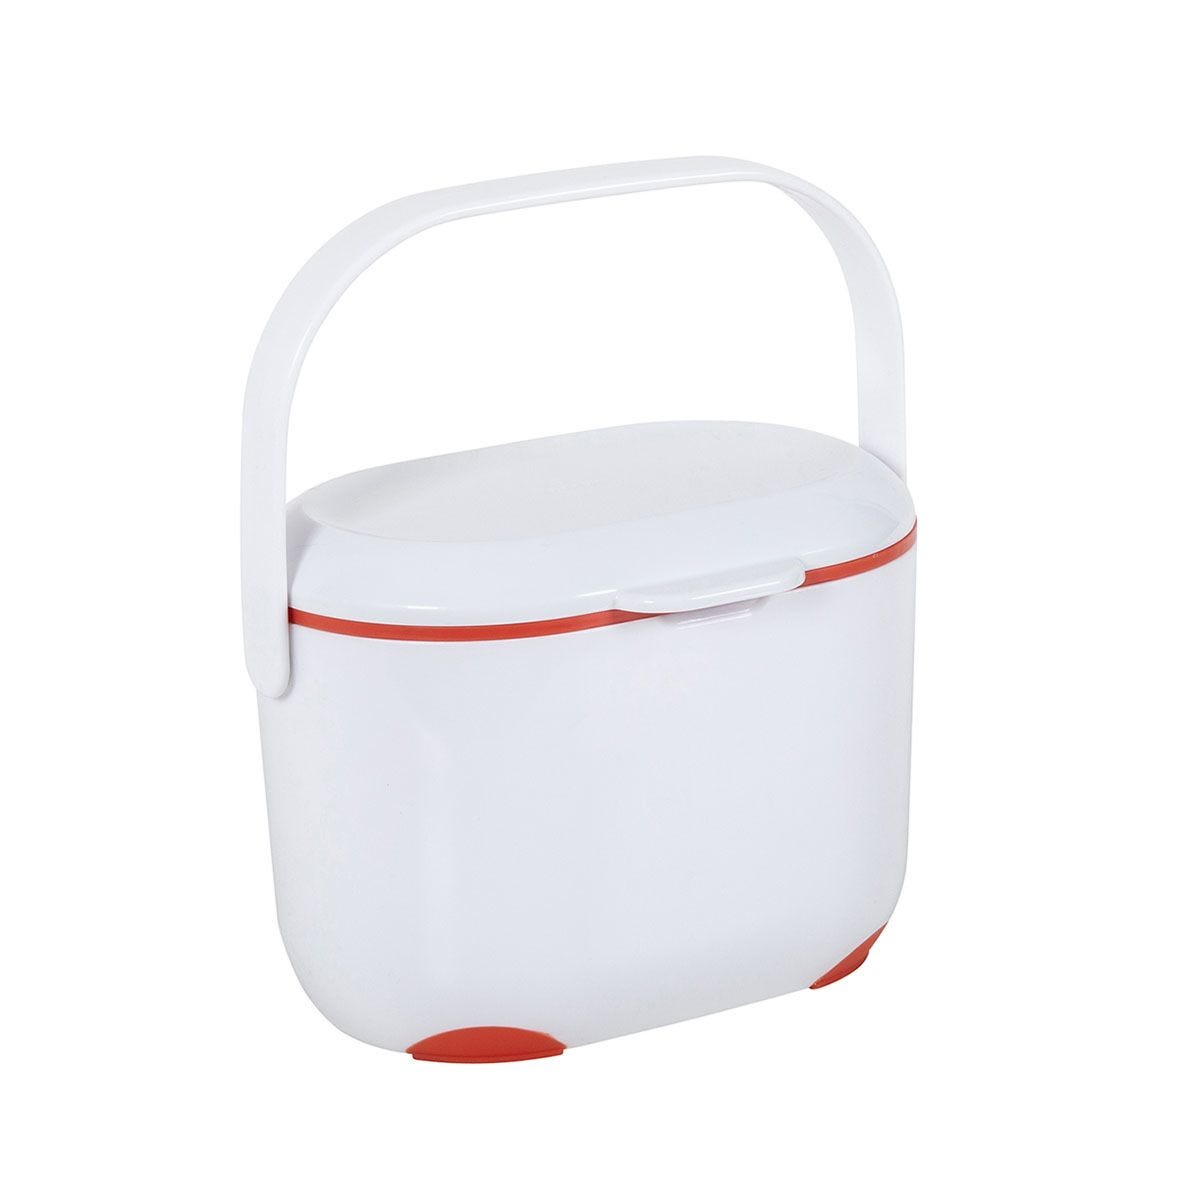 Addis 2.5L Compost Caddy - White and Flame